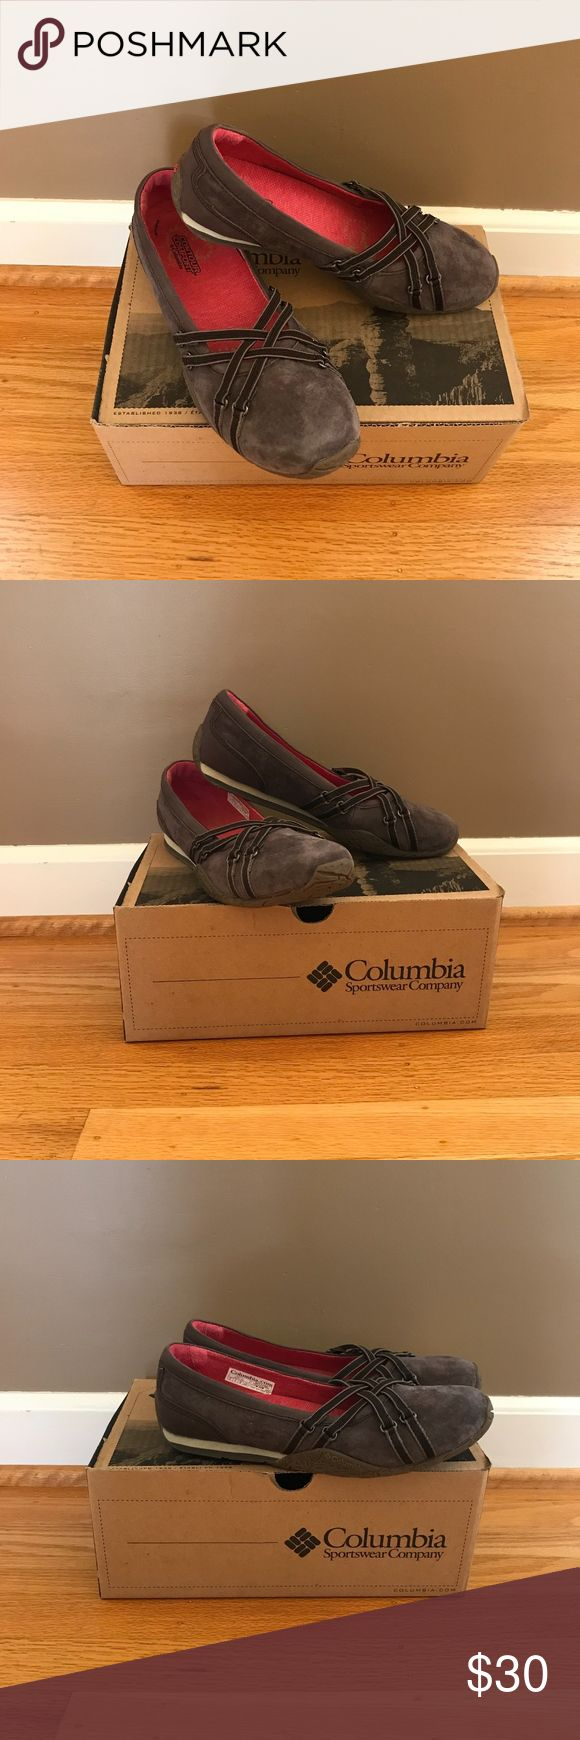 """Columbia Sportswear Company """"Kaci 2"""" Flat The Kaci 2 flat features an Omni-tech water-resistant full grain and suede leather upper with an EVA midsole. Non-marking Omni-Grip rubber sole provides reliable durability and traction. Color: stout, popsicle. This flirty flat is the perfect choice for daily excursions as well as weekend getaways. Outfit yourself for everyday adventure with these cute and comfy shoes!  Brand new, never been worn! Columbia Shoes Flats & Loafers"""